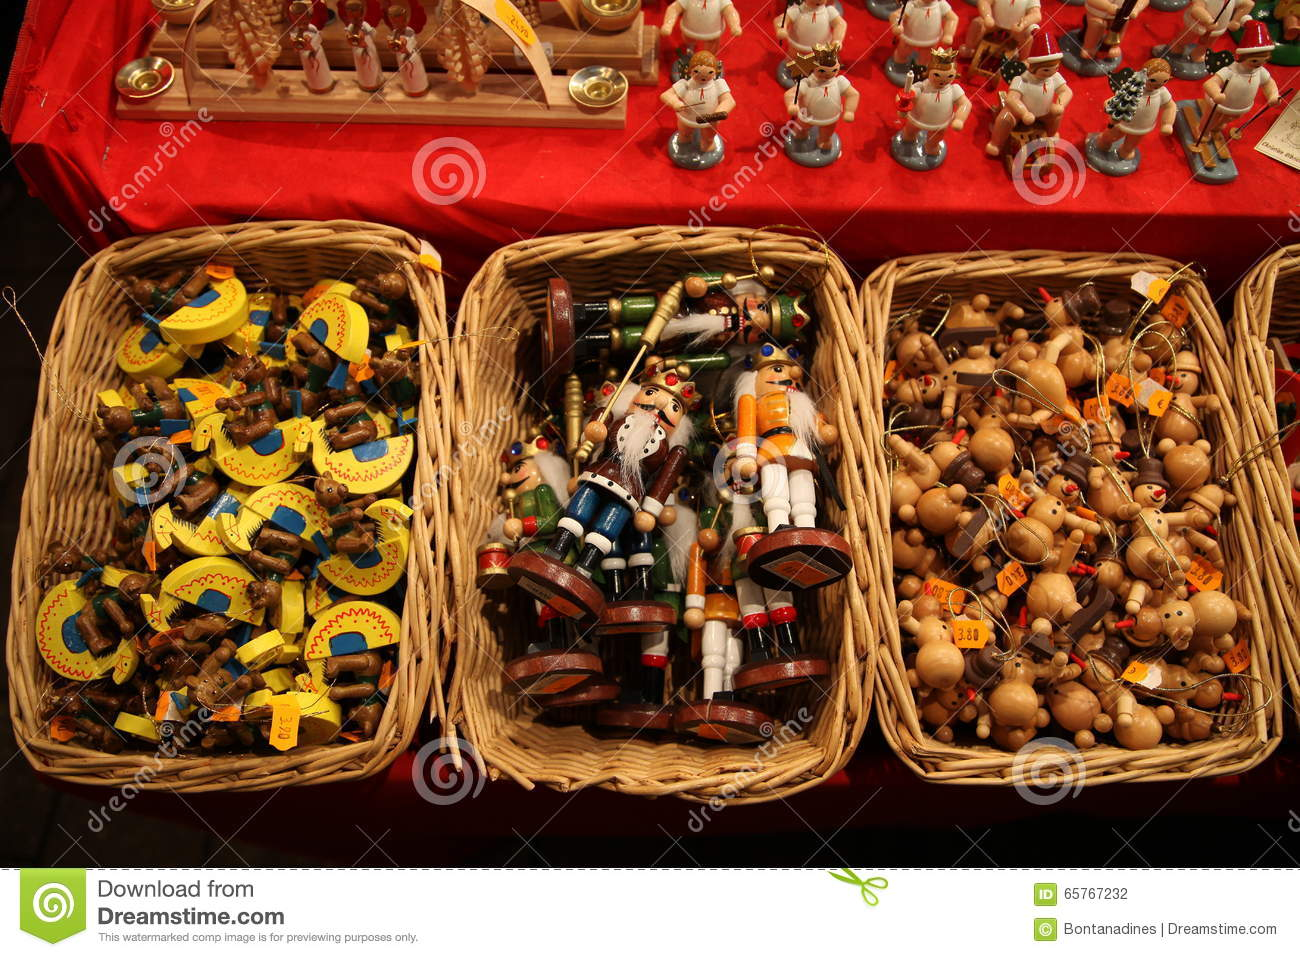 Traditional german christmas decorations - Traditional German Wooden Christmas Decorations In A Wicker Basket On A Christmas Fair Stock Photography